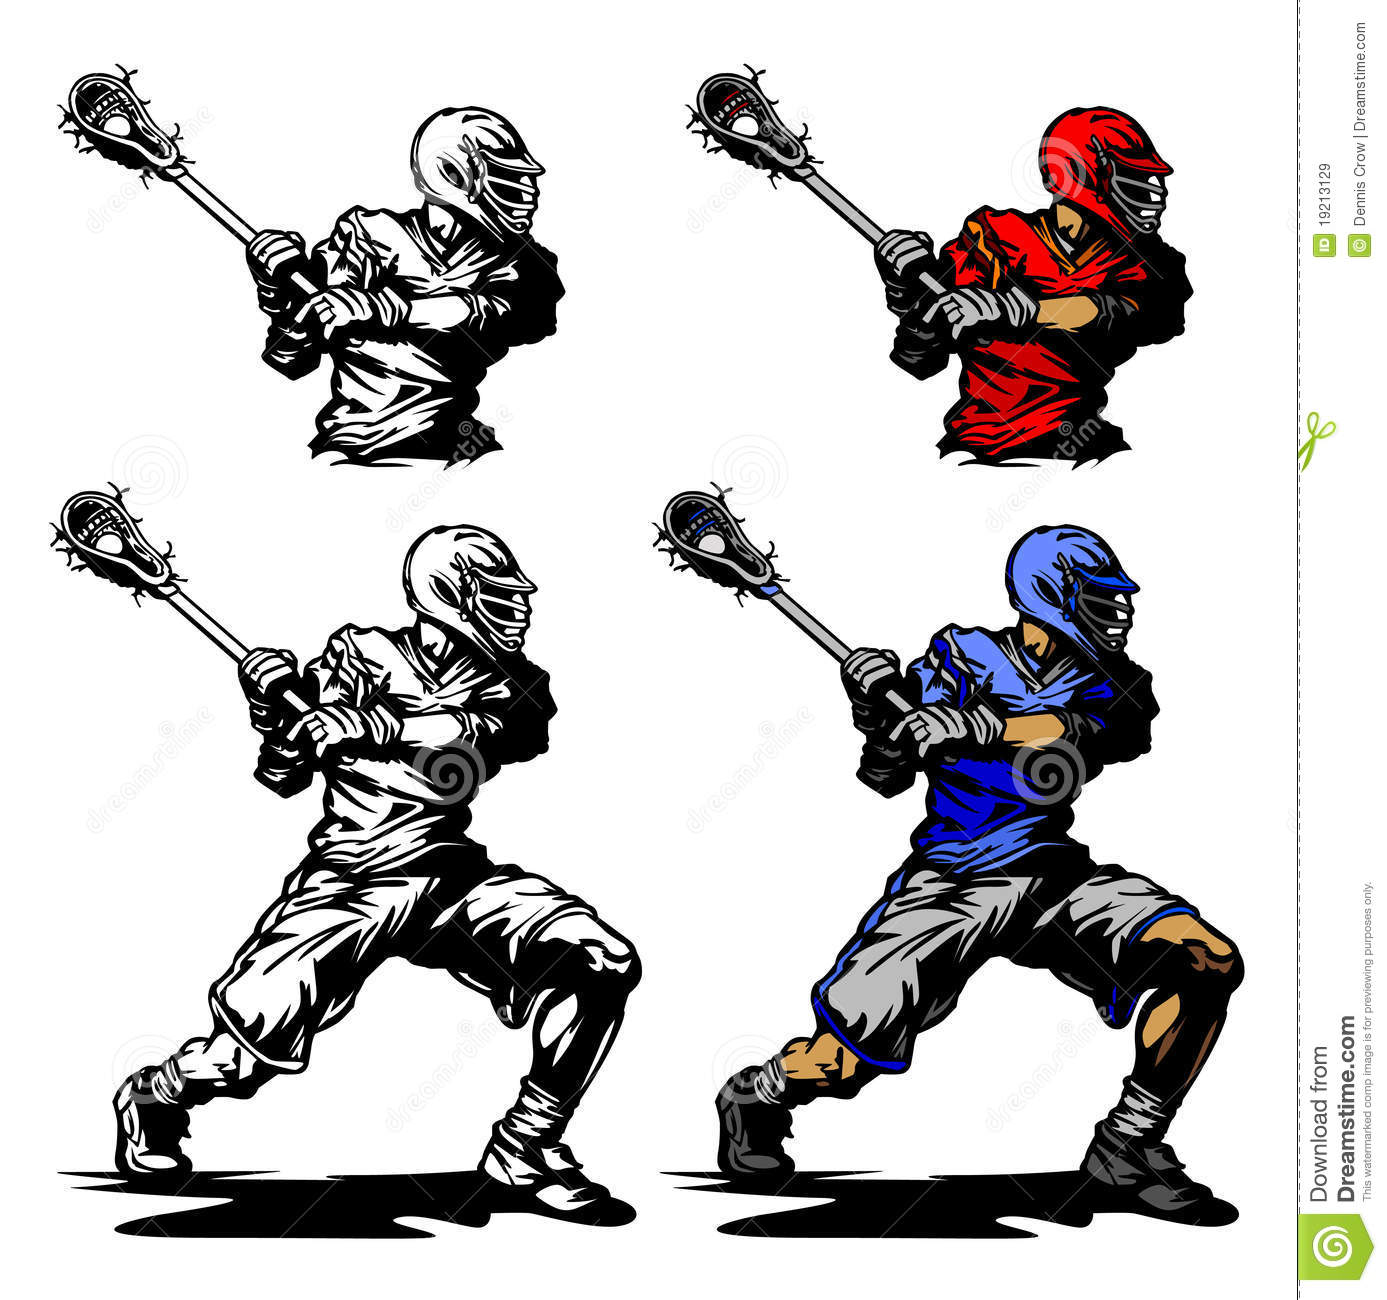 hight resolution of lacrosse player cradling ball